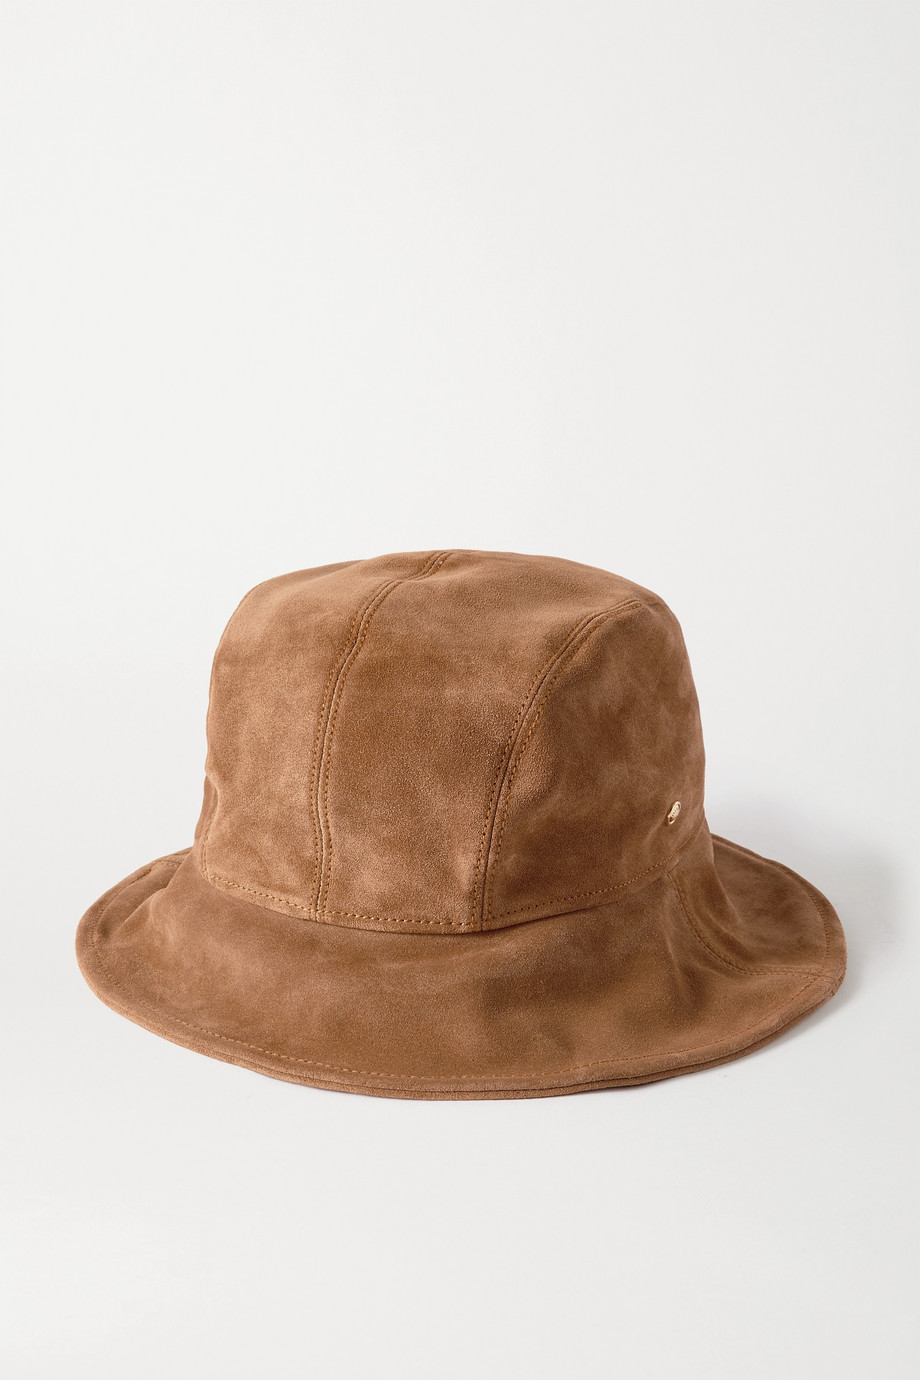 RAG & BONE Nando suede bucket hat